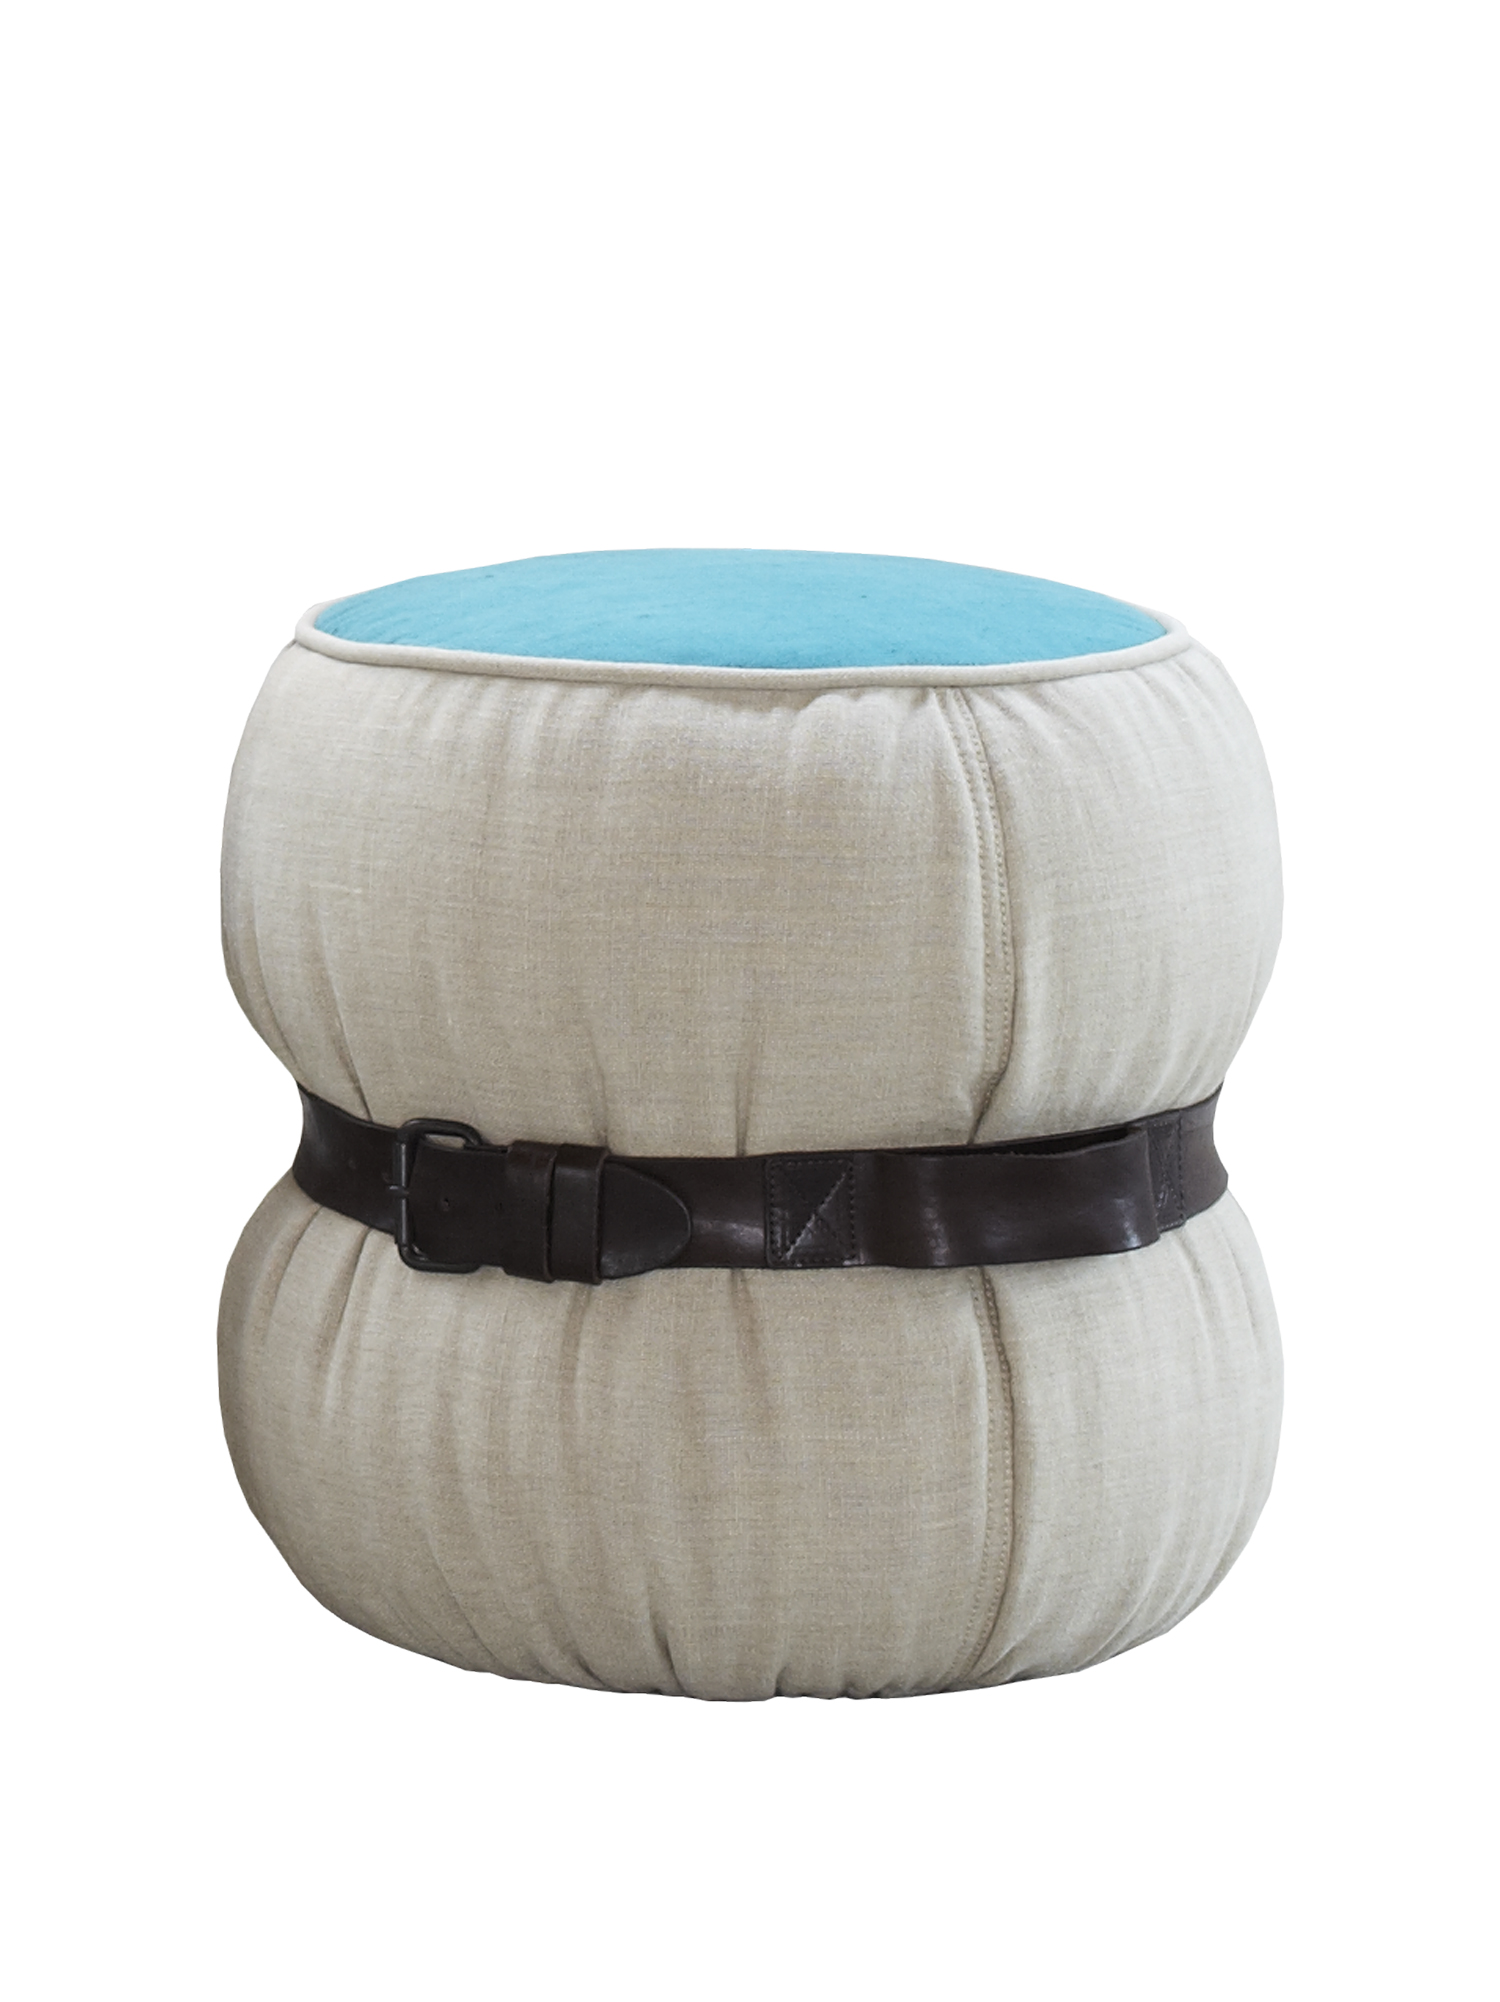 Diesel - CHUBBY POUF 45,  - Furniture - Image 3